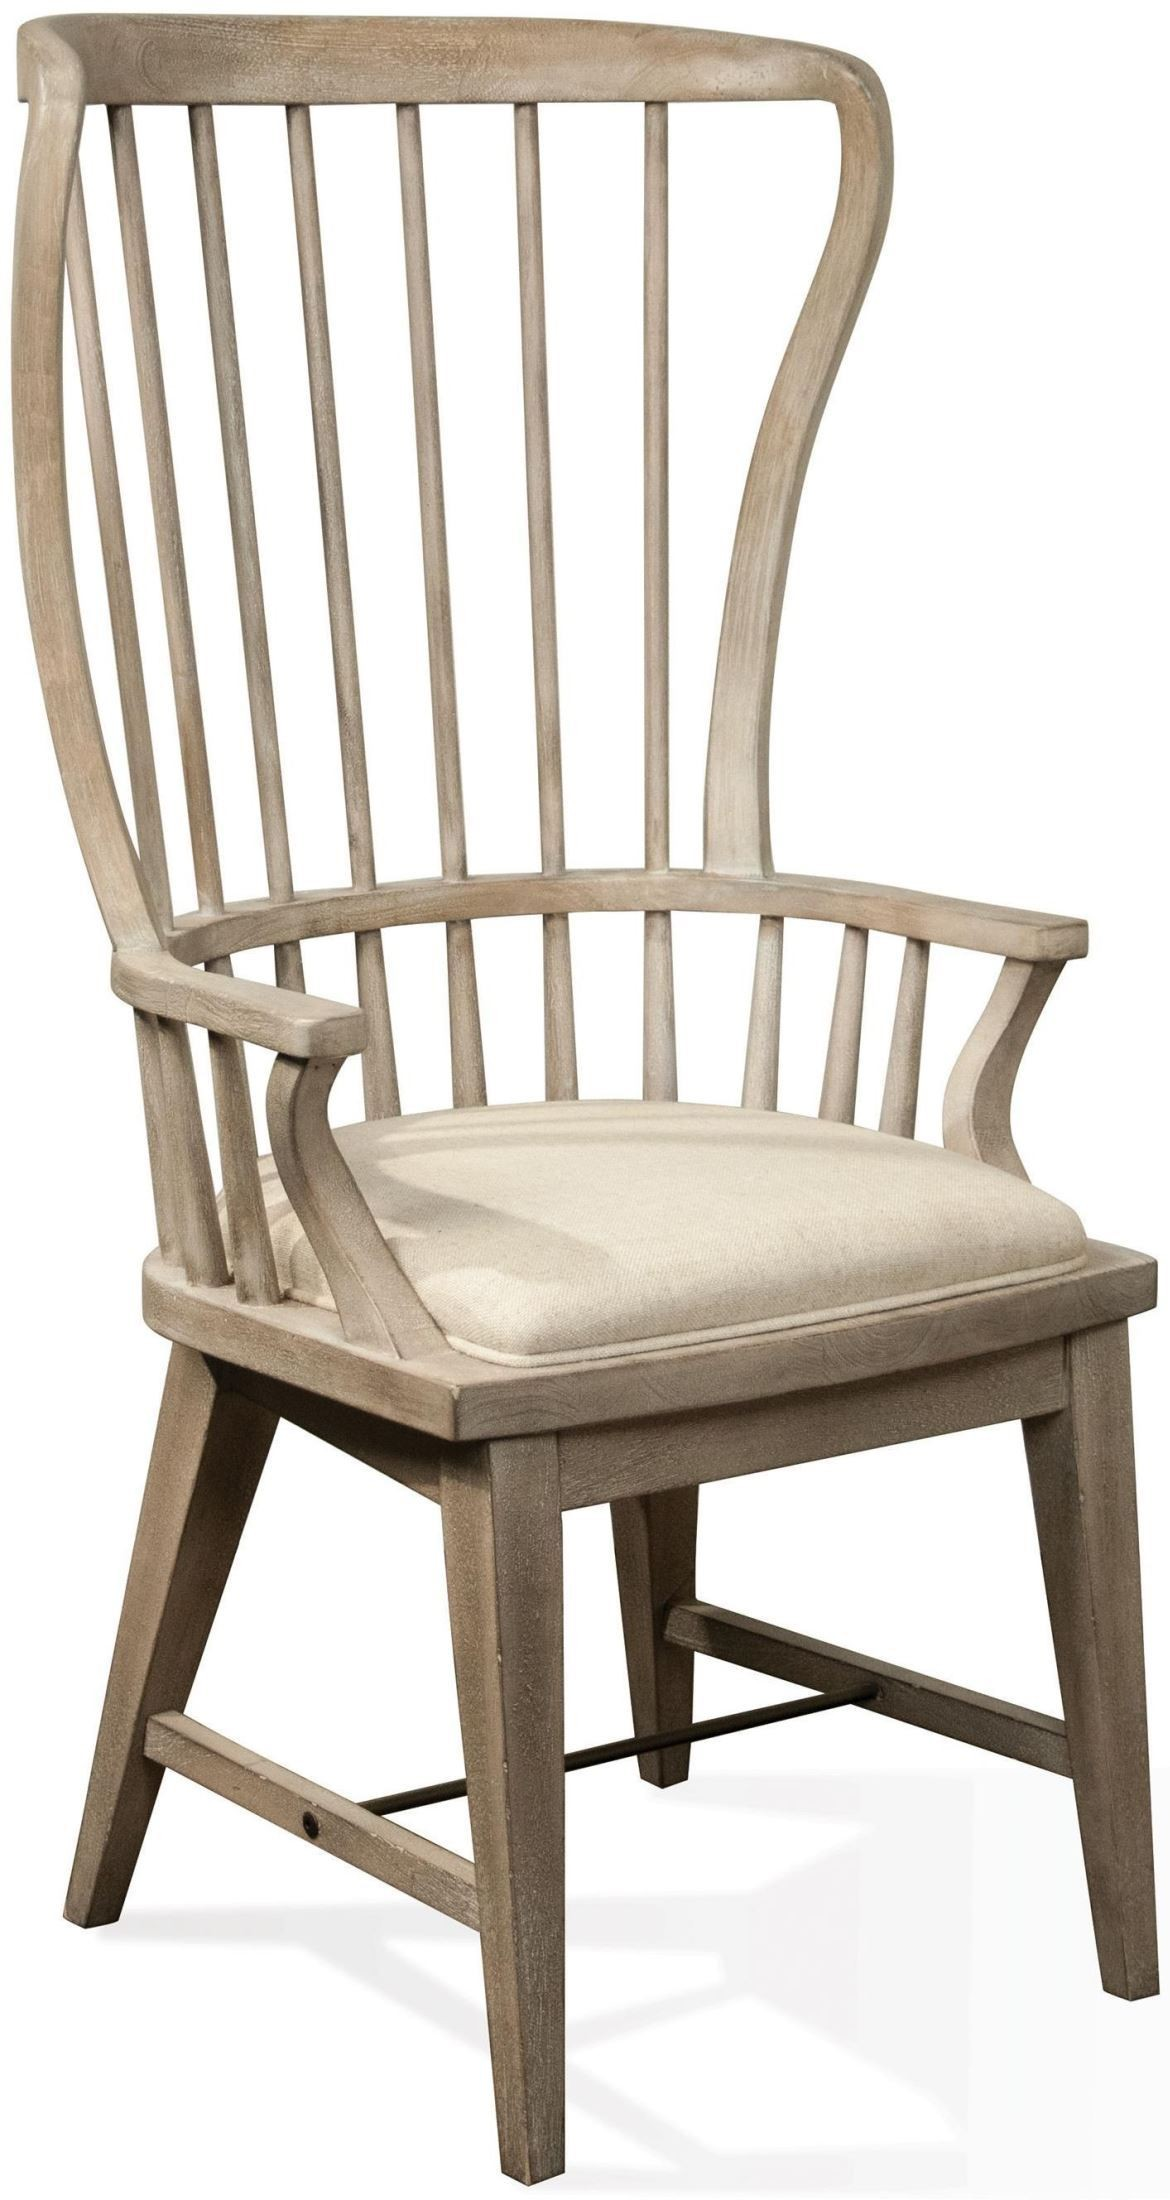 Juniper Natural Upholstered Windsor Host Chair From Riverside Furniture |  Coleman Furniture